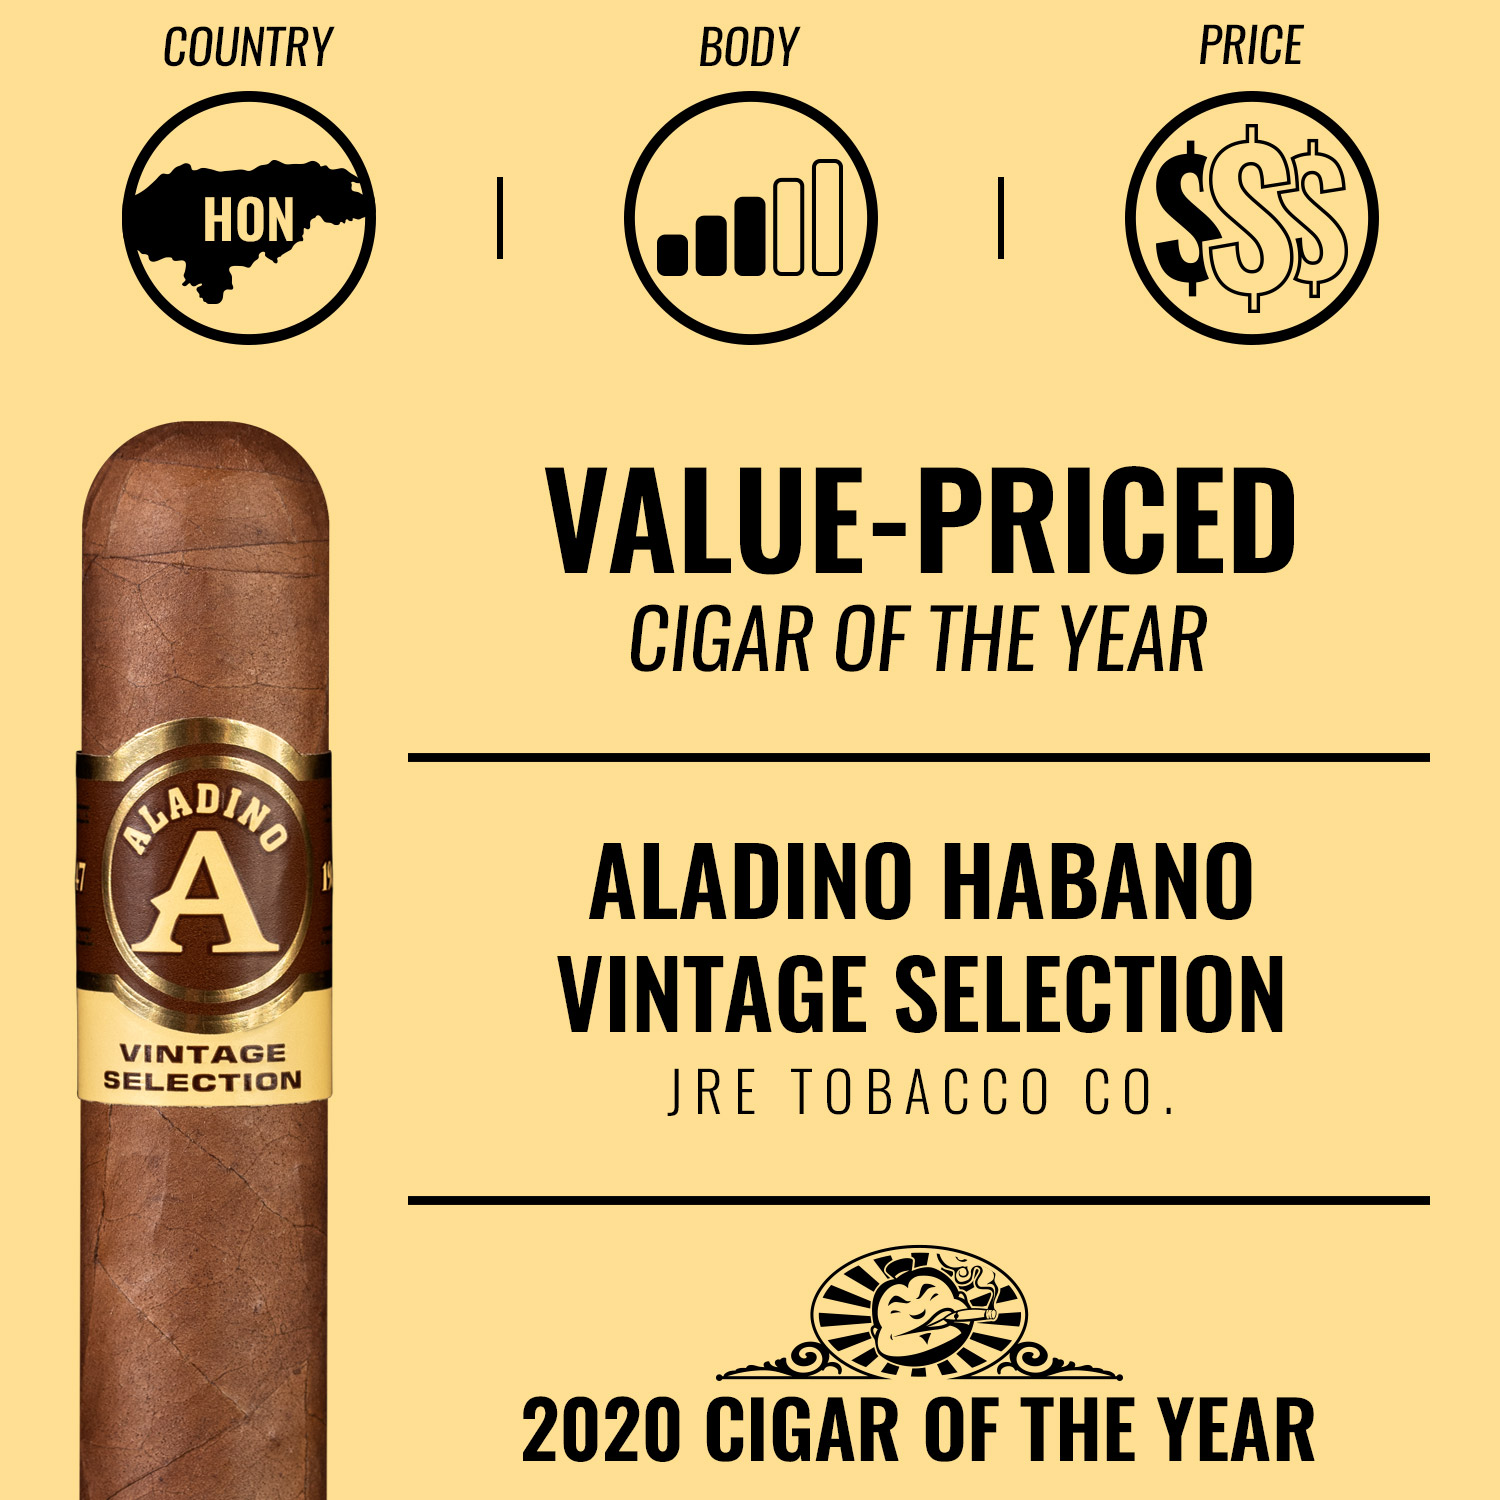 Aladino Habano Vintage Selection Value-Priced Cigar of the Year 2020